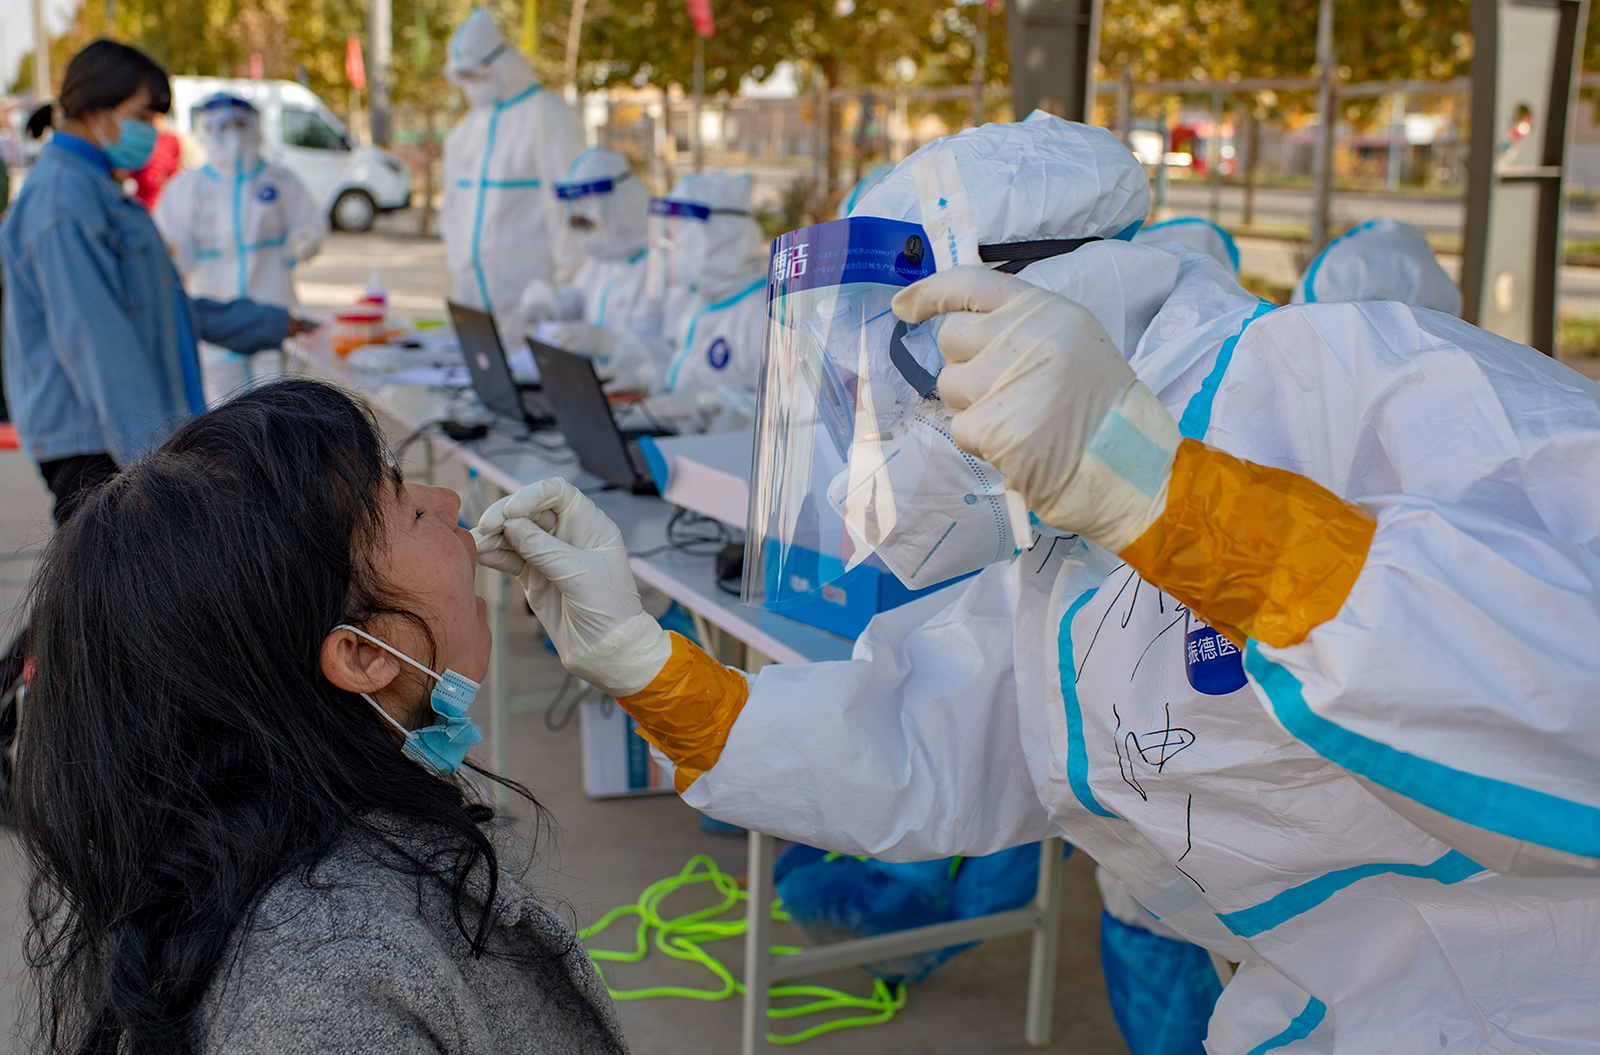 A medical worker collects a sample from a person for nucleic acid testing in Shufu County of Kashgar Prefecture, northwest China's Xinjiang Uygur Autonomous Region, on October 26.